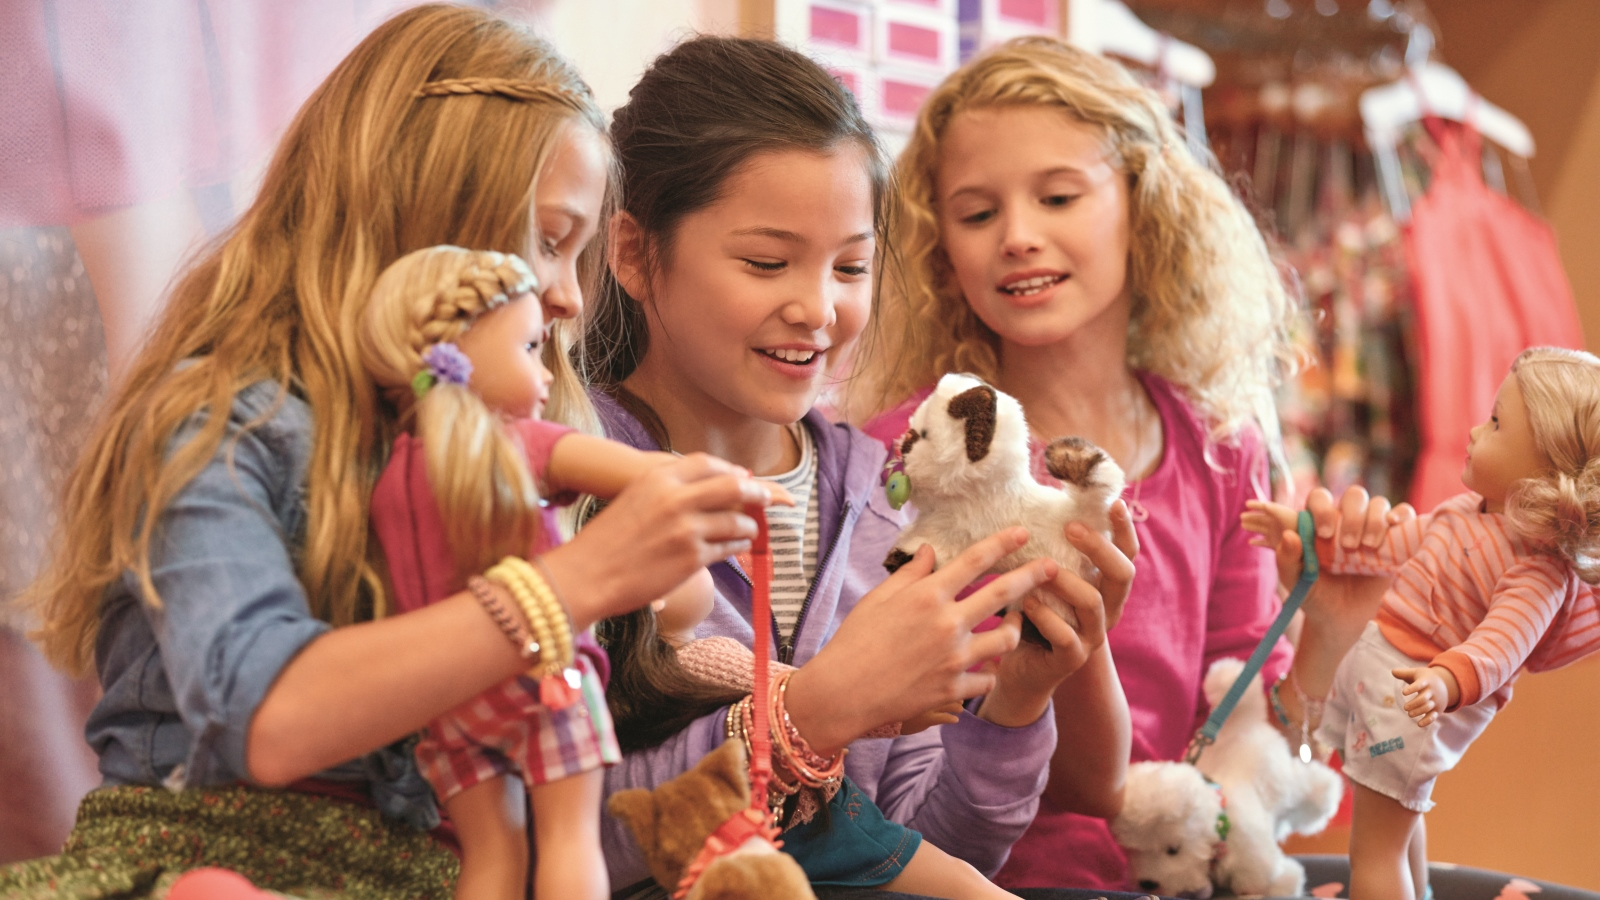 The American Girl Store has an exciting variety of dolls, clothes, games and gifts.